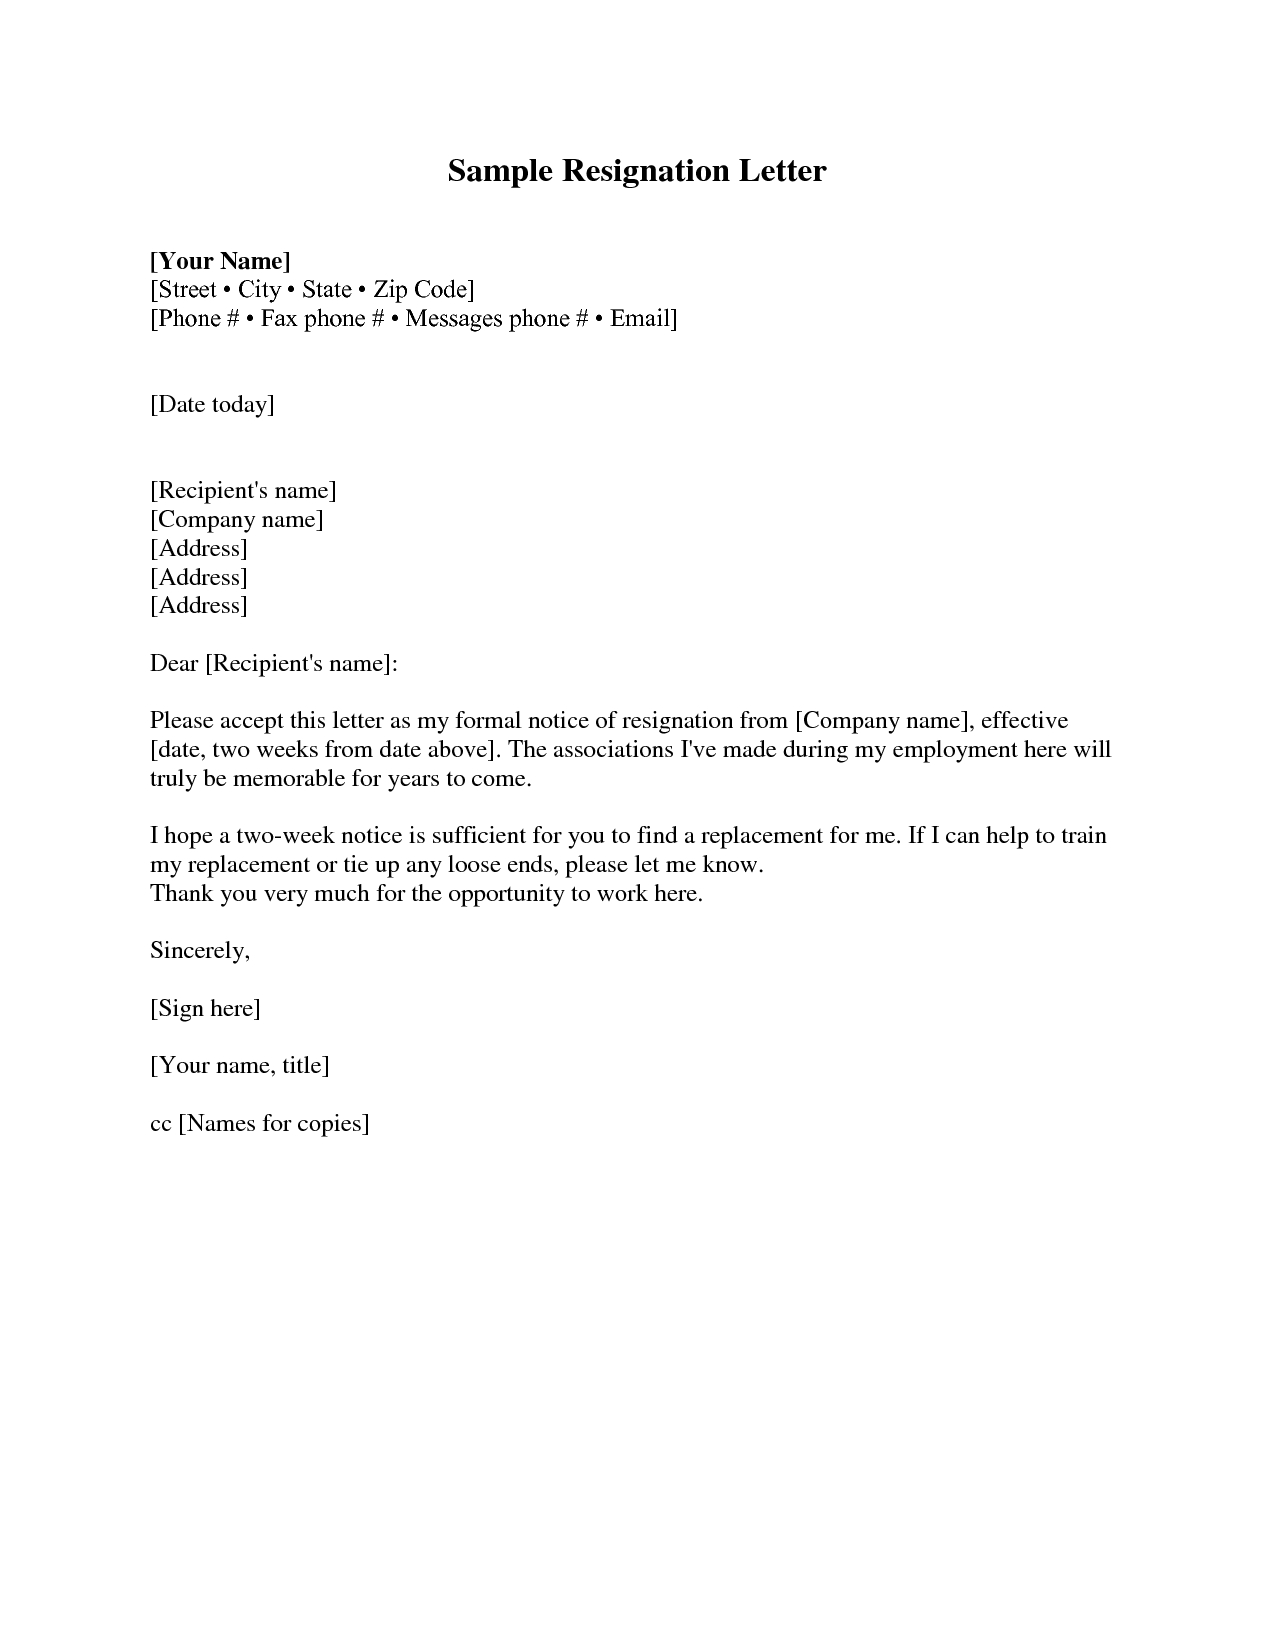 Resignation Letter Template Free Download - Resignation Letter Sample 2 Weeks Notice Free2img